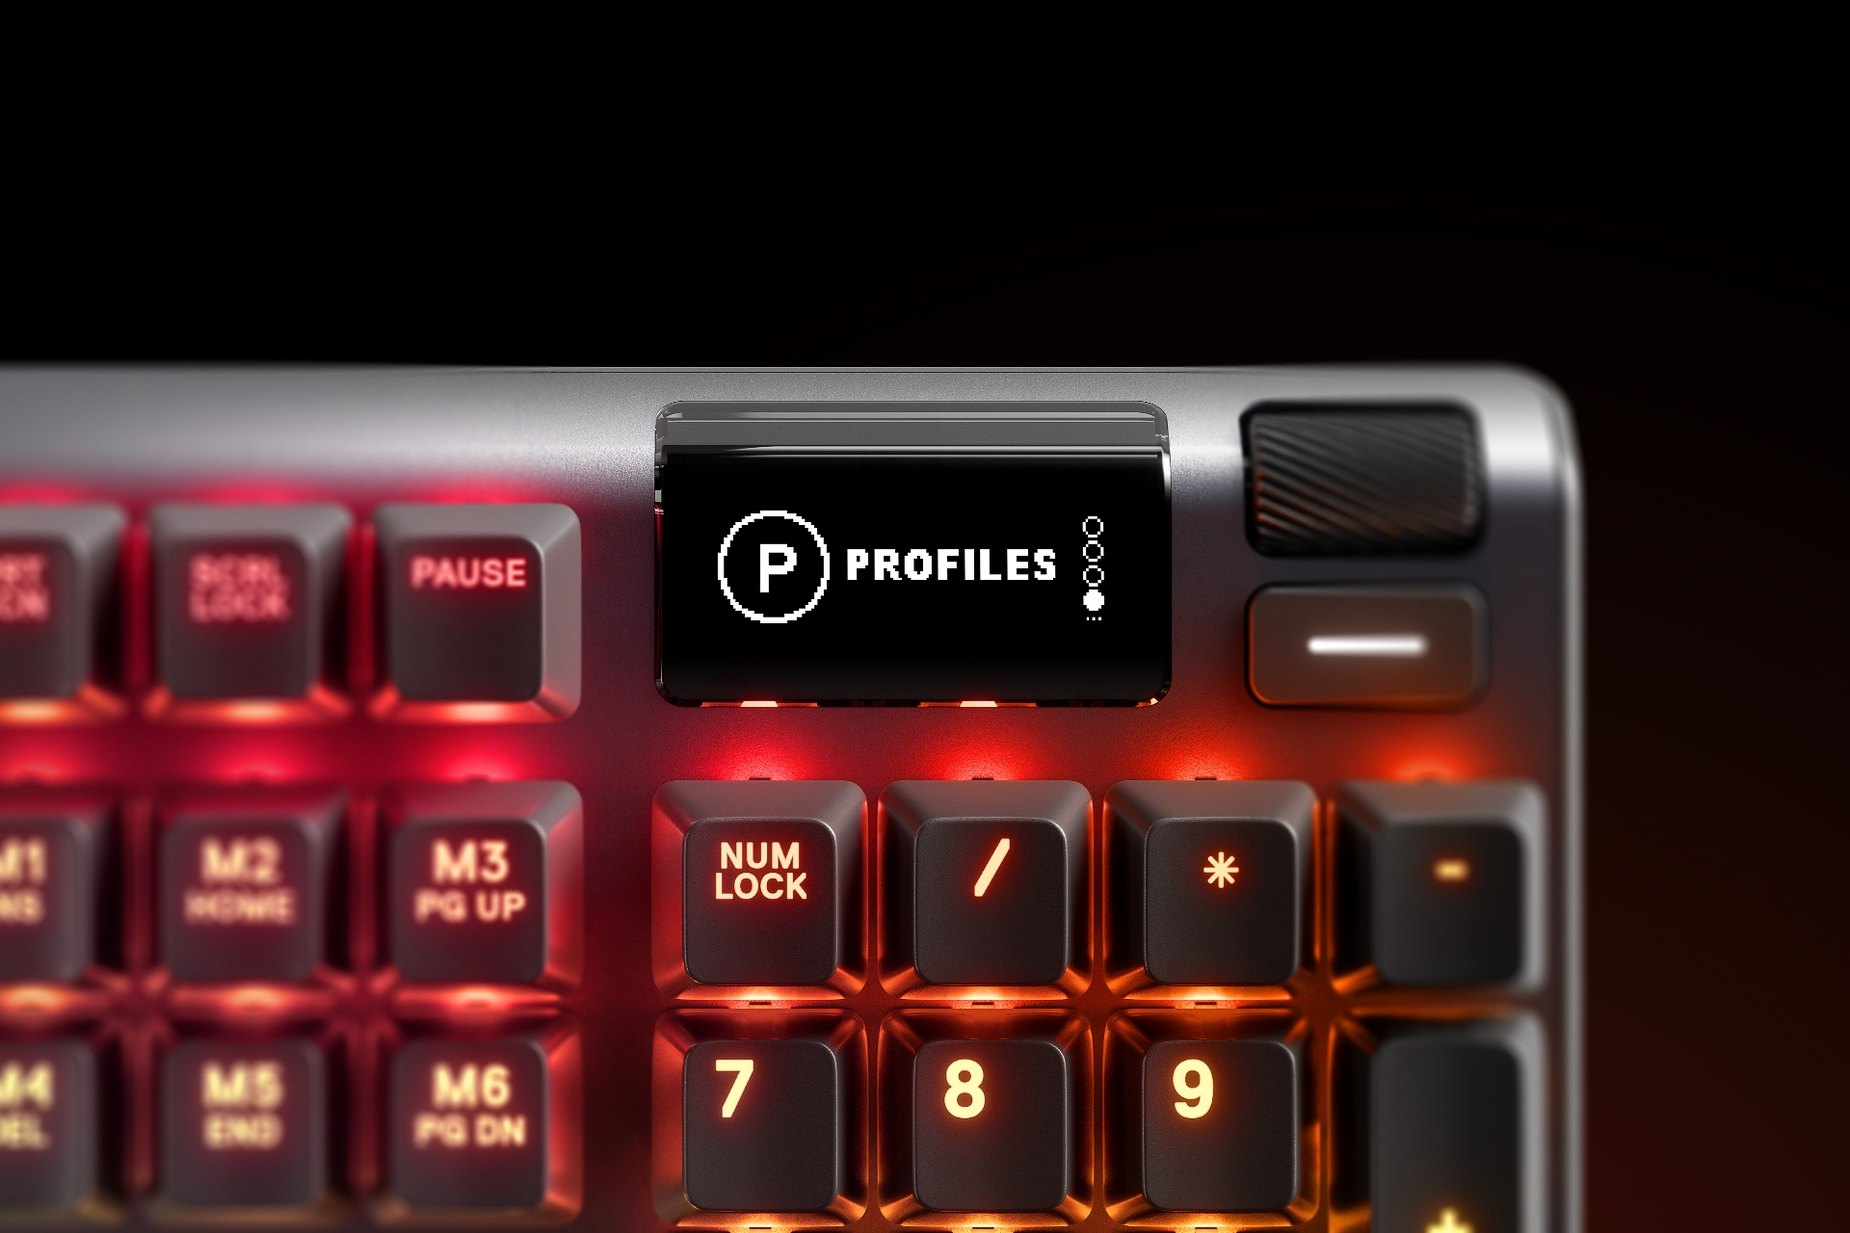 Zoomed in view of the multimedia and settings controls/volume roller on the French-Apex 7 (Brown Switch) gaming keyboard